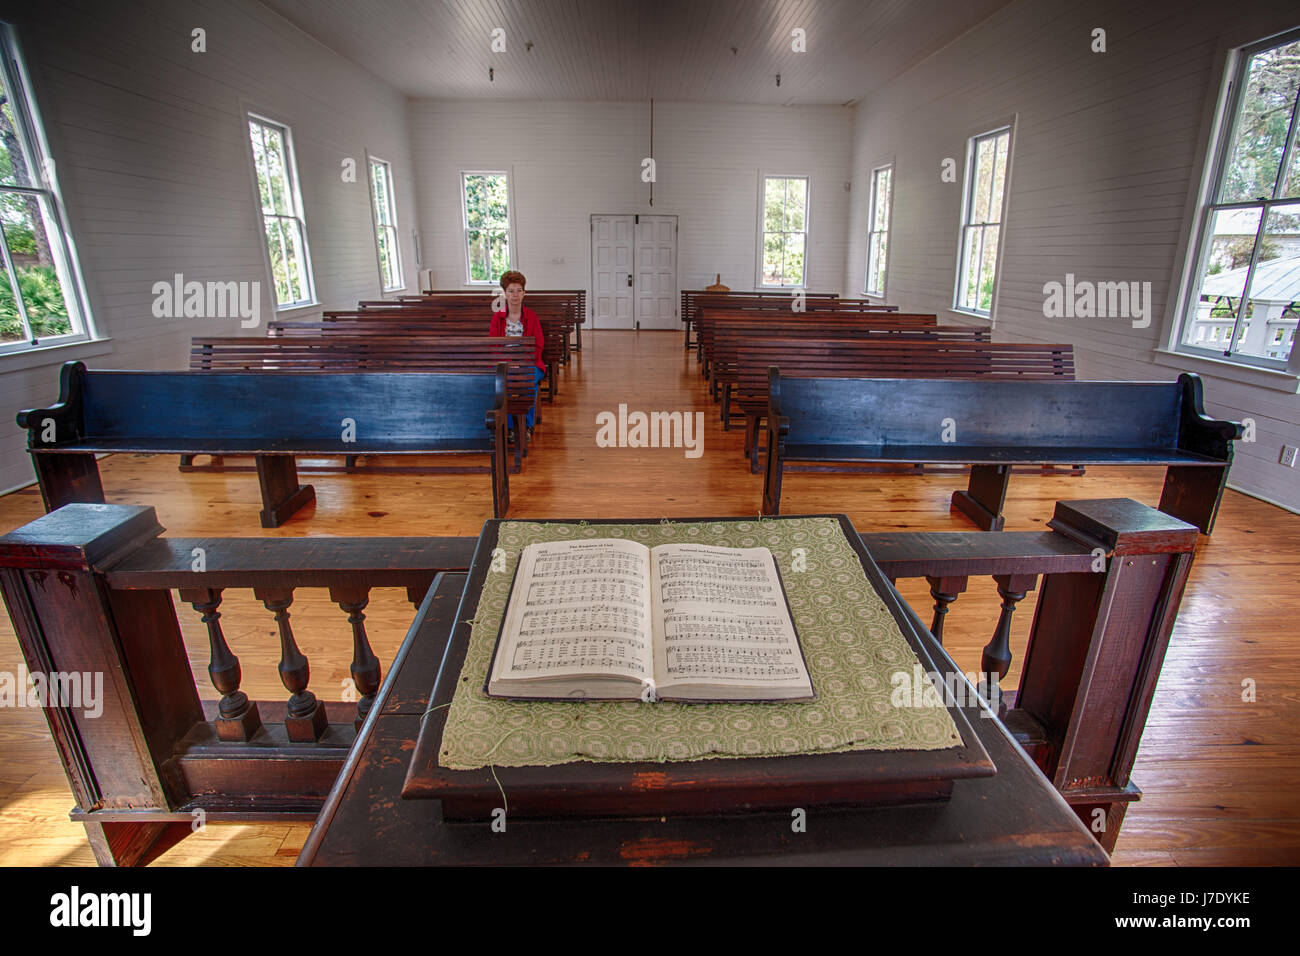 Woman sitting in a pew in an empty chapel - Stock Image